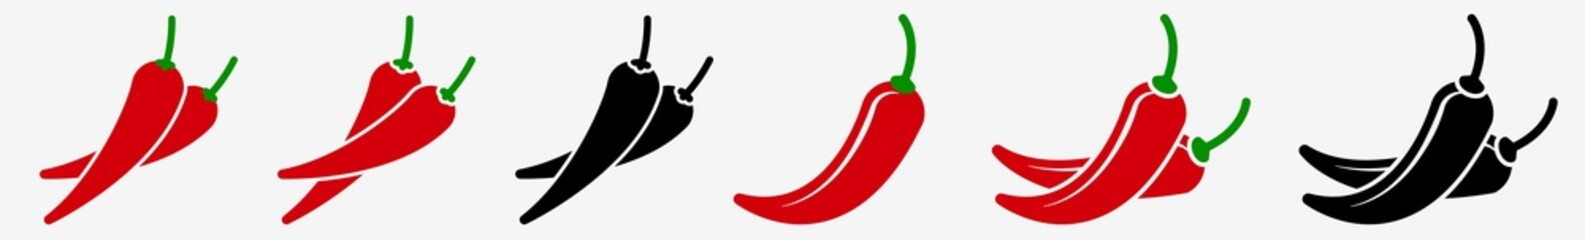 Fototapeta Spicy Chili Pepper Icon Hot Chili Pepper Set | Chili Peppers Icon Spicy Mexican Food Vector Illustration Logo | Red Chili-Pepper Icon Isolated Hot Spicy Chilis Collection obraz